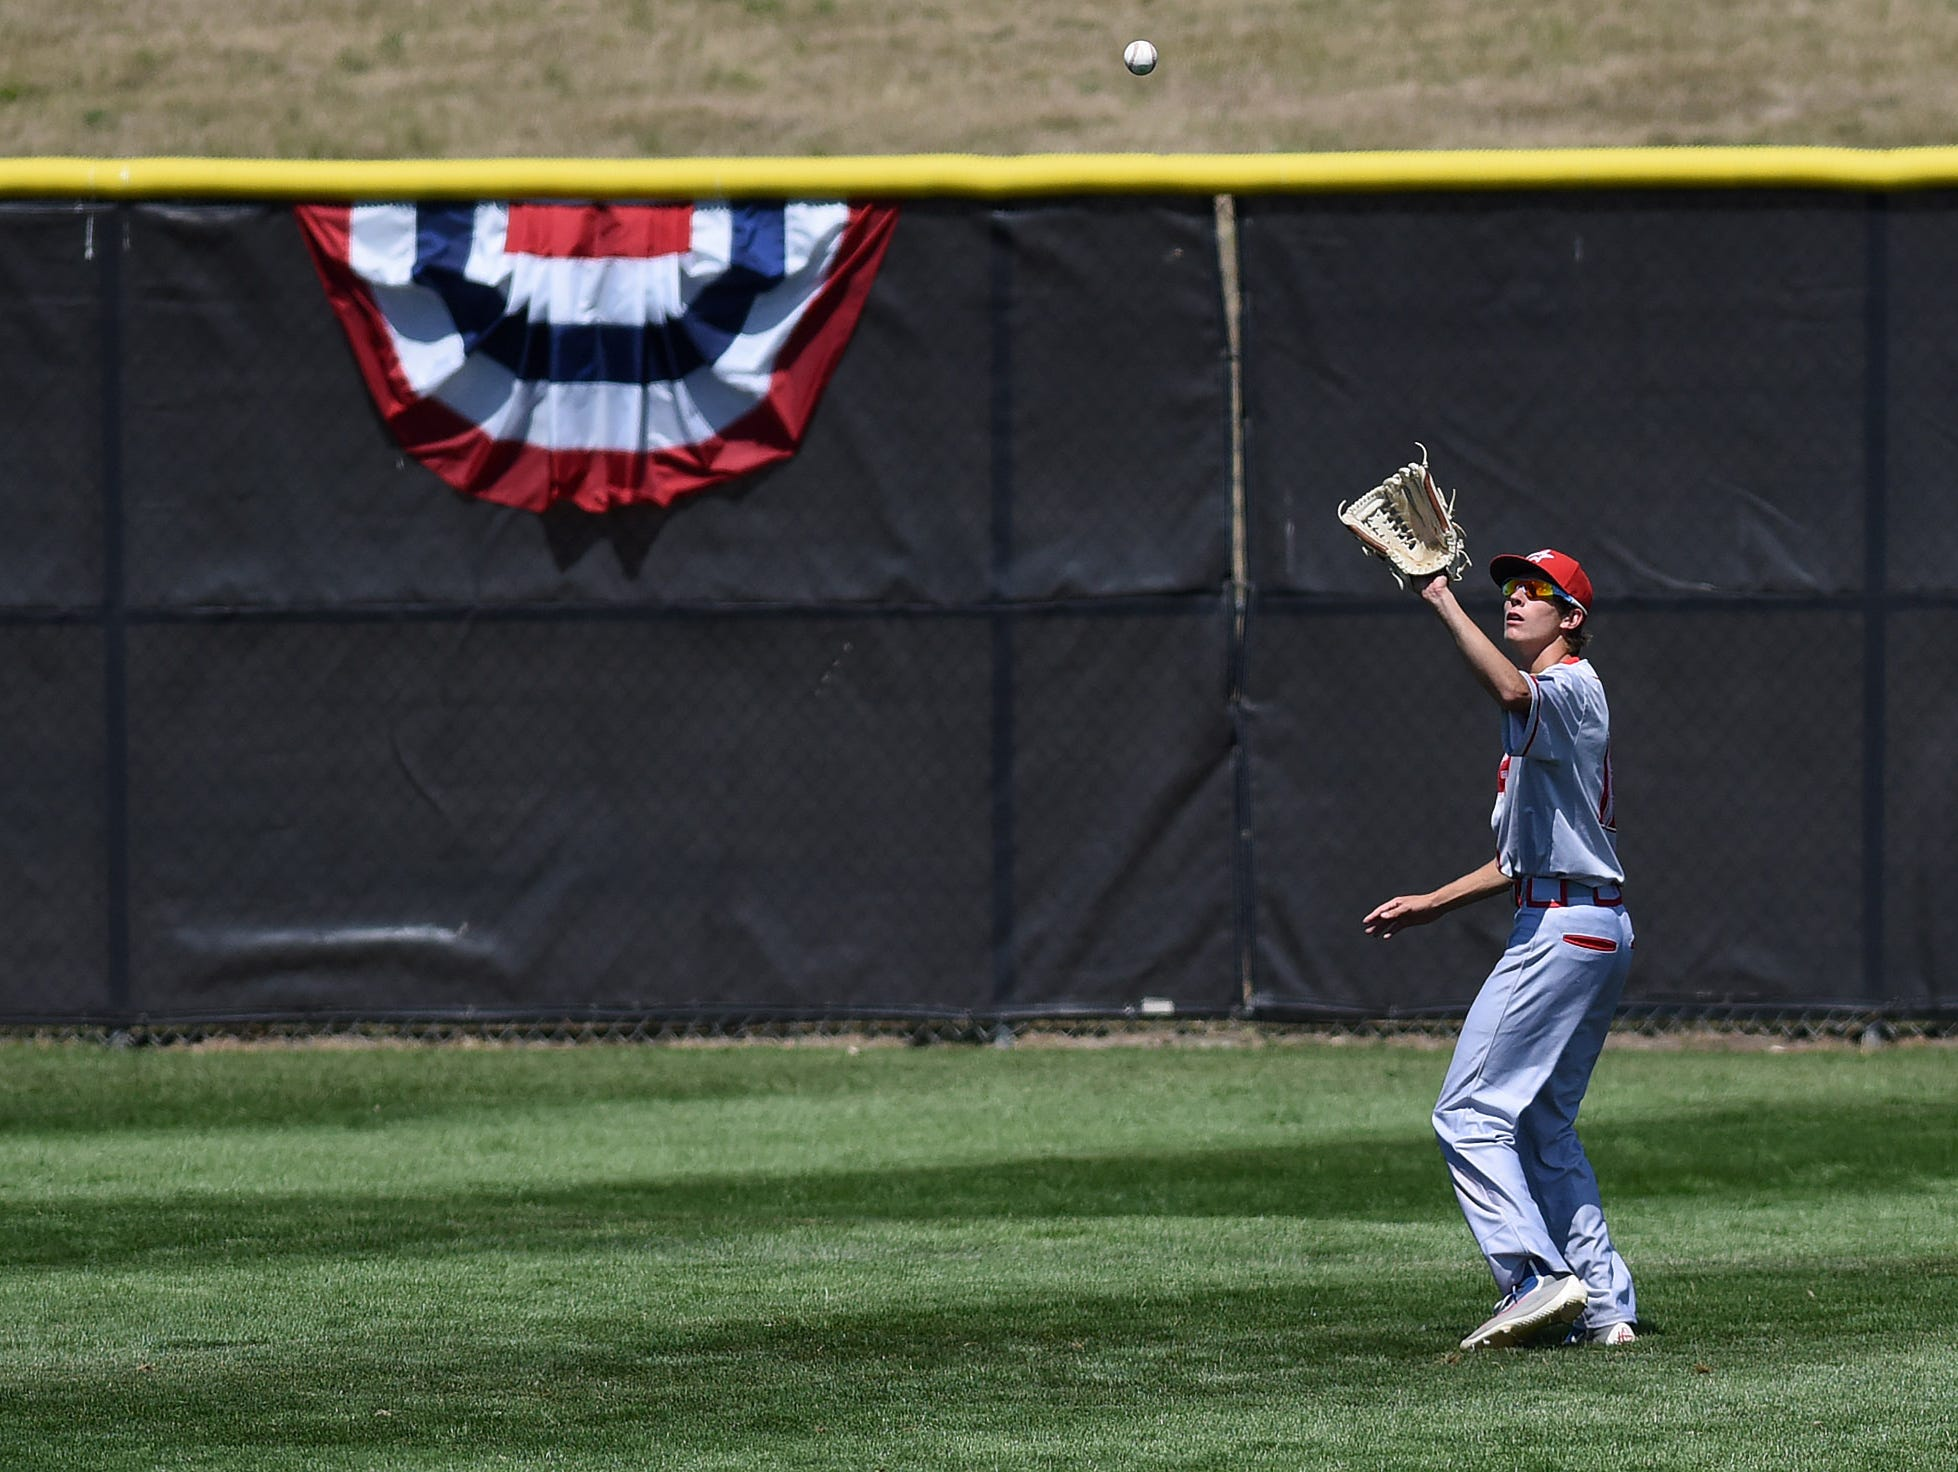 Rapid City Post 320's Zane Salley catches the ball against Sioux Falls East Post 15 during the American Legion Class A Baseball State Tournament at Harmodon Park on Saturday afternoon.